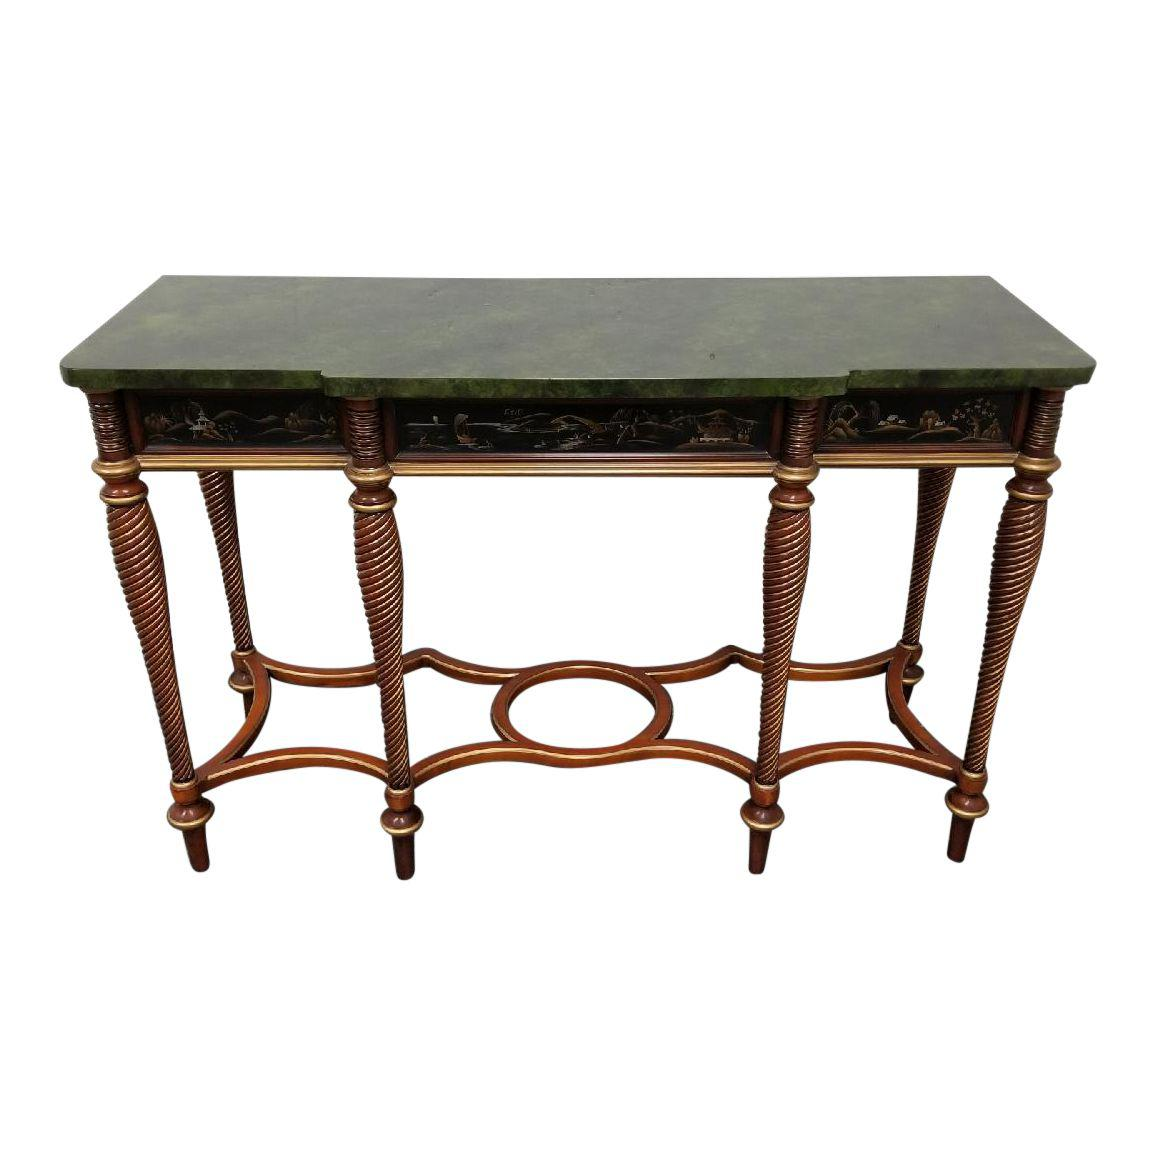 John Widdocomb Green Faux Marble Console Table From The Mario Buatta  Collection   Design Plus Gallery